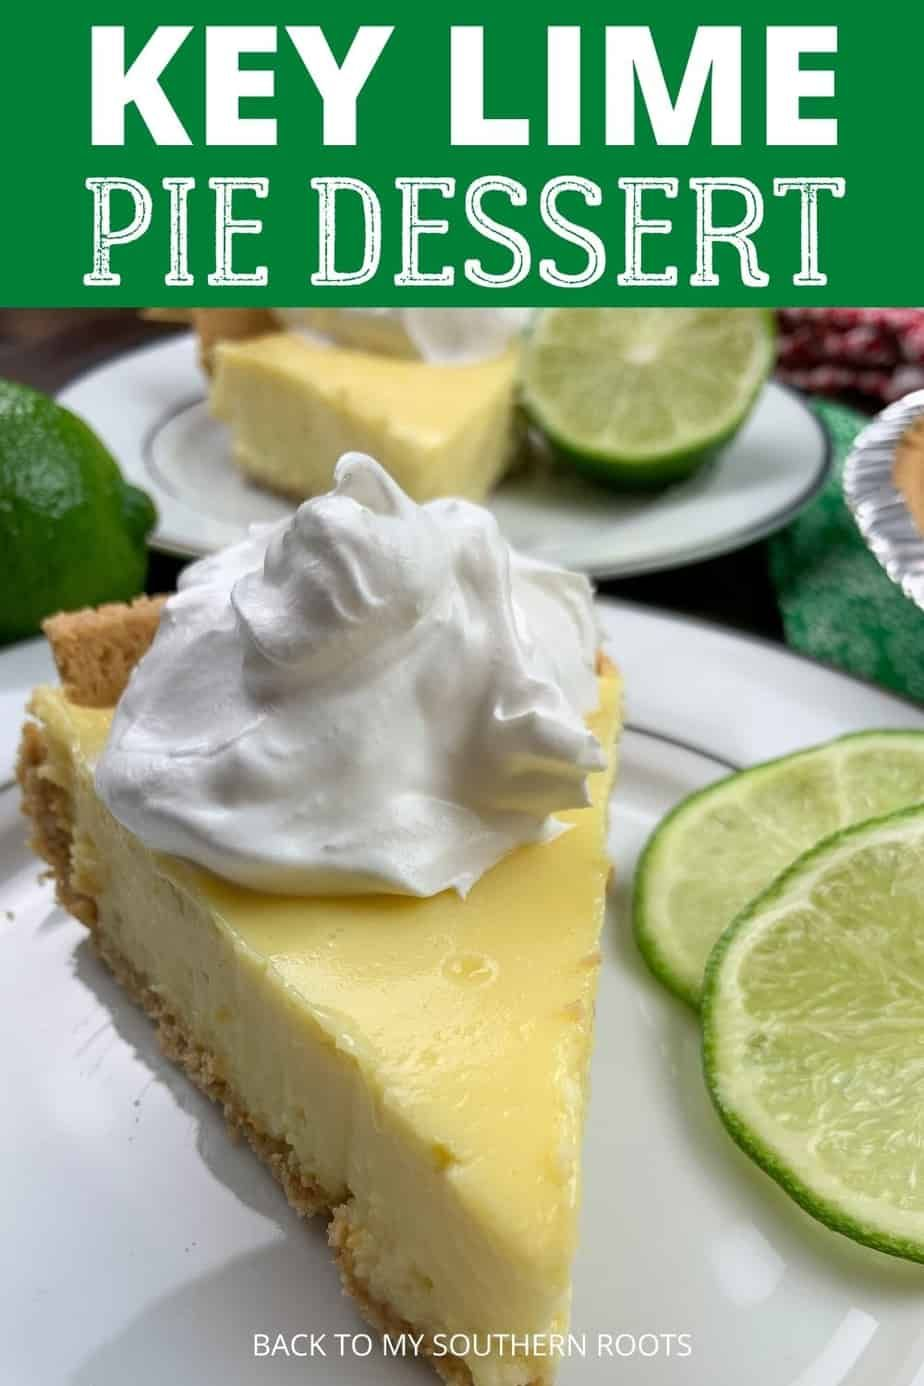 Key Lime Pie With Sweetened Condensed Milk Recipe In 2020 Milk Recipes Interesting Food Recipes Condensed Milk Recipes